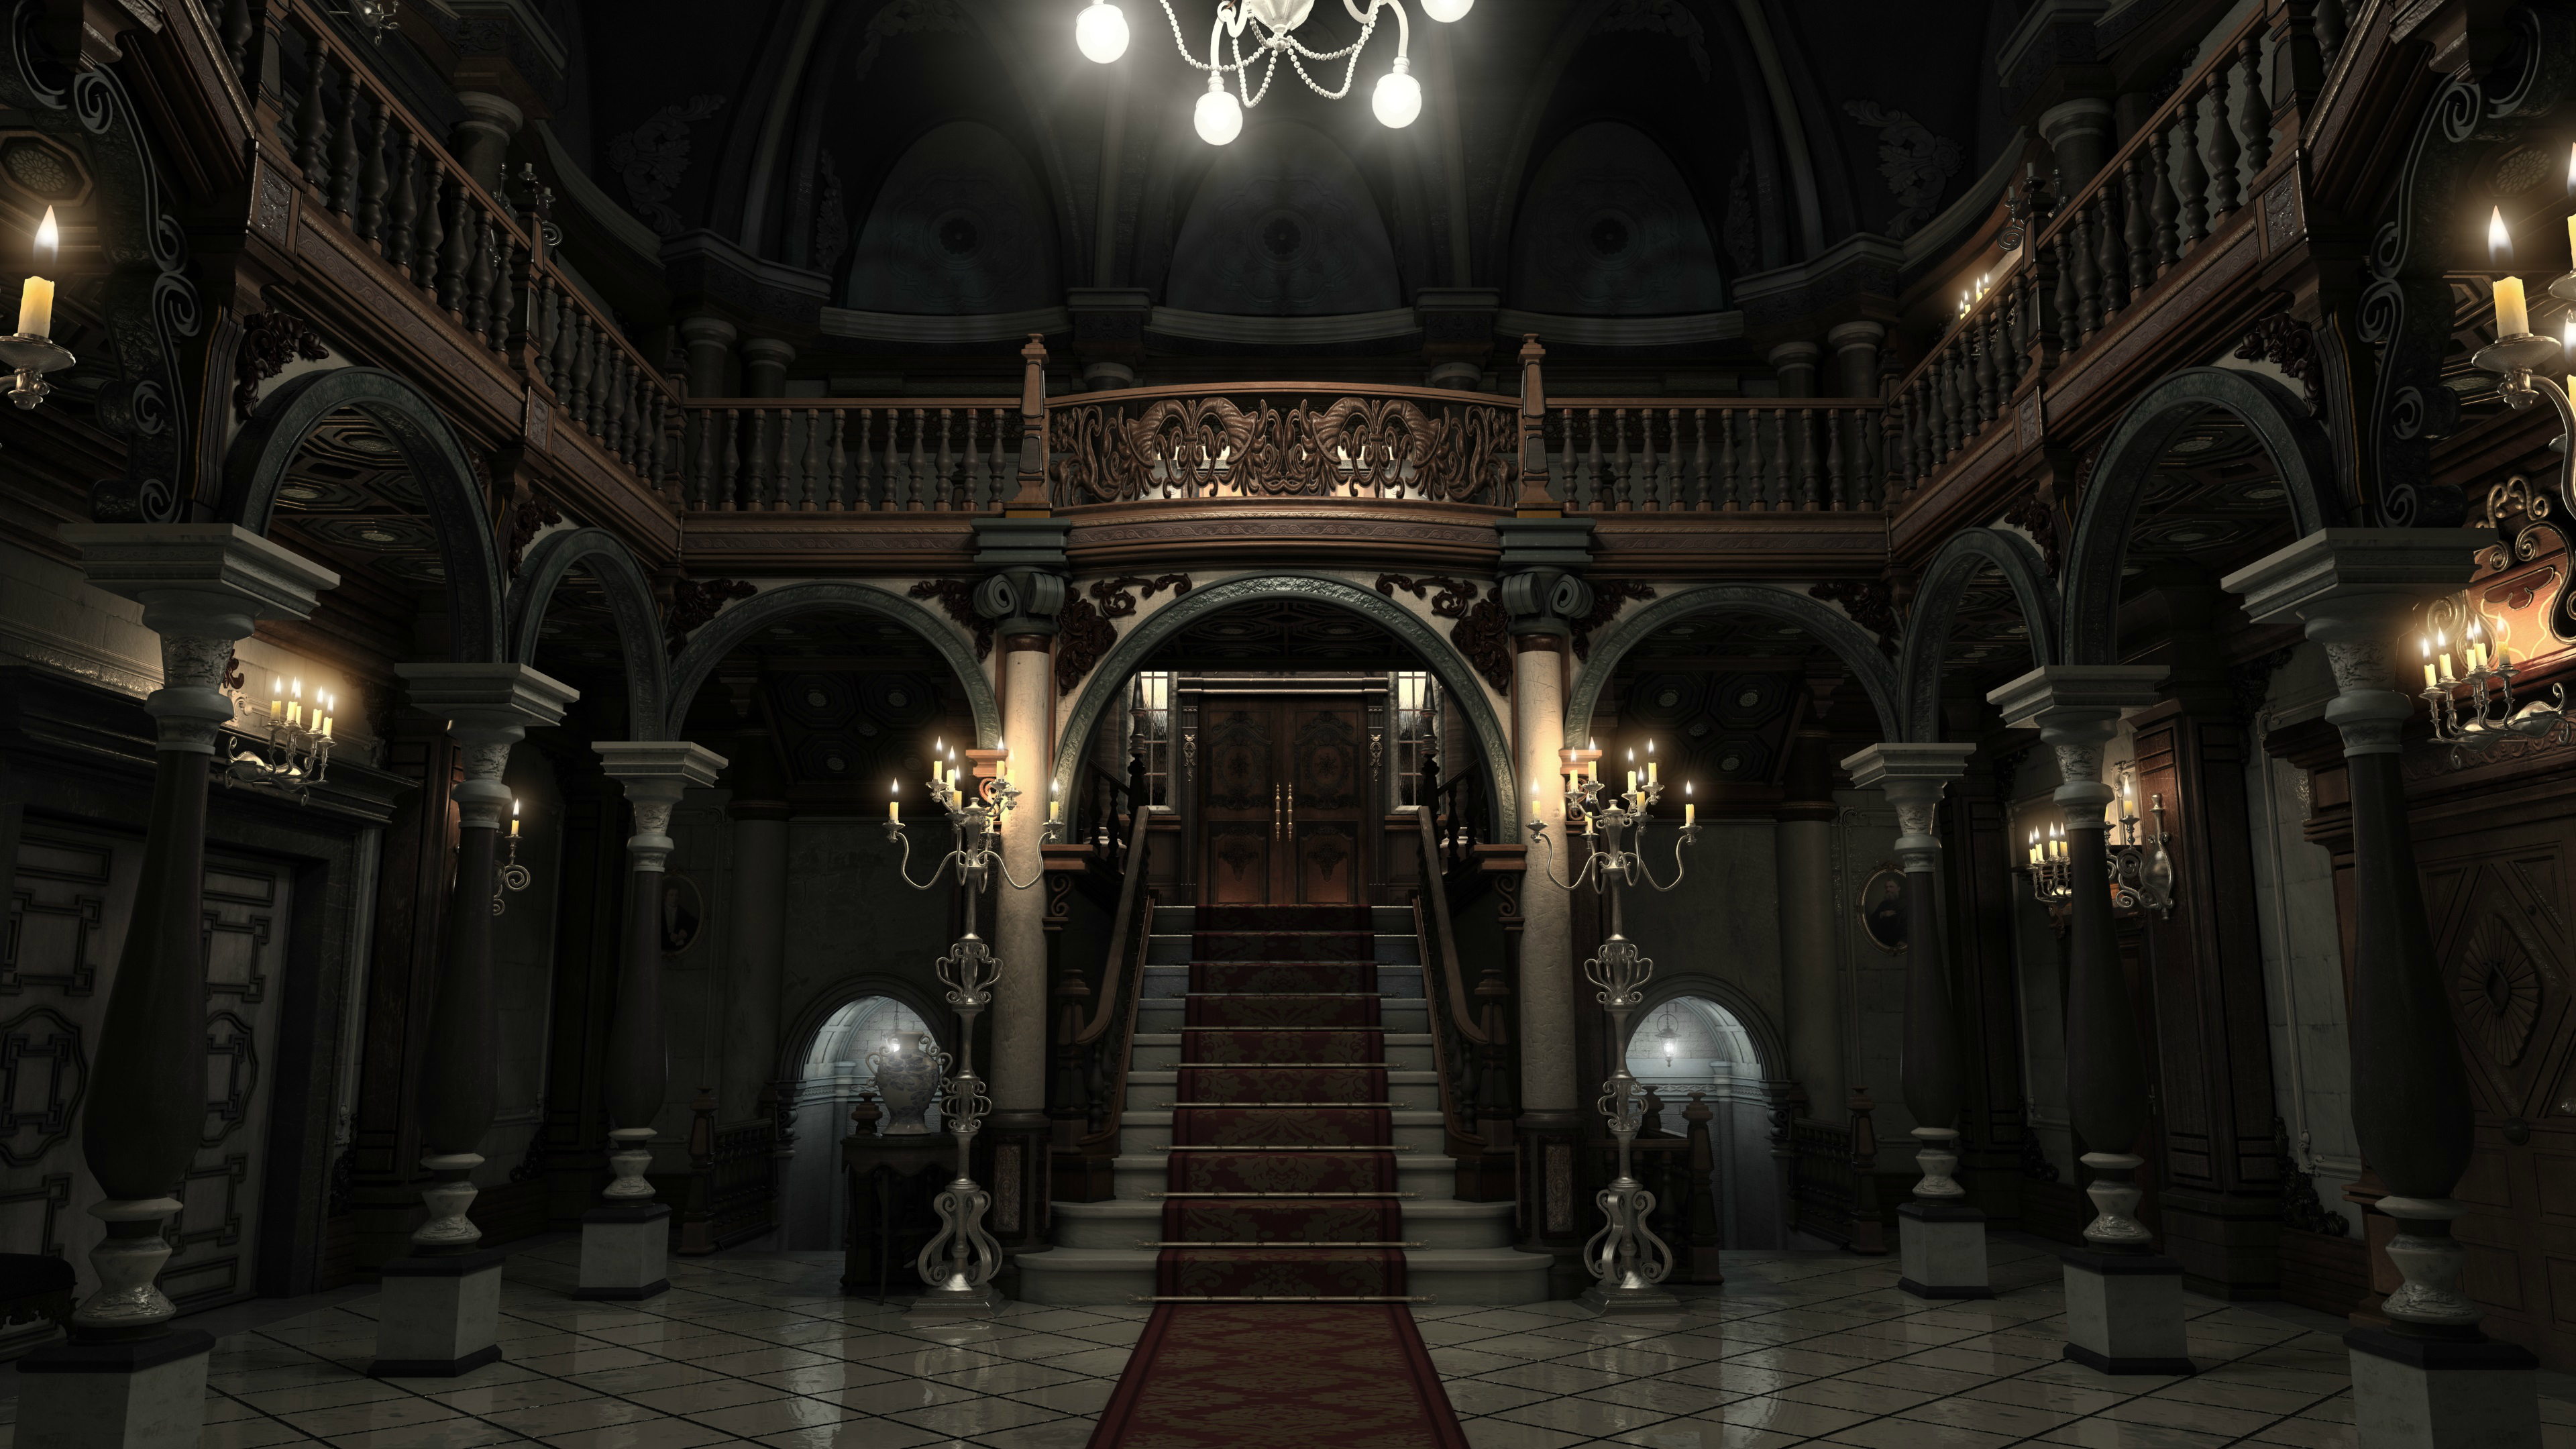 Abandoned Mansions For Sale Cheap Resident Evil Mansion 4k Render By Bowu On Deviantart